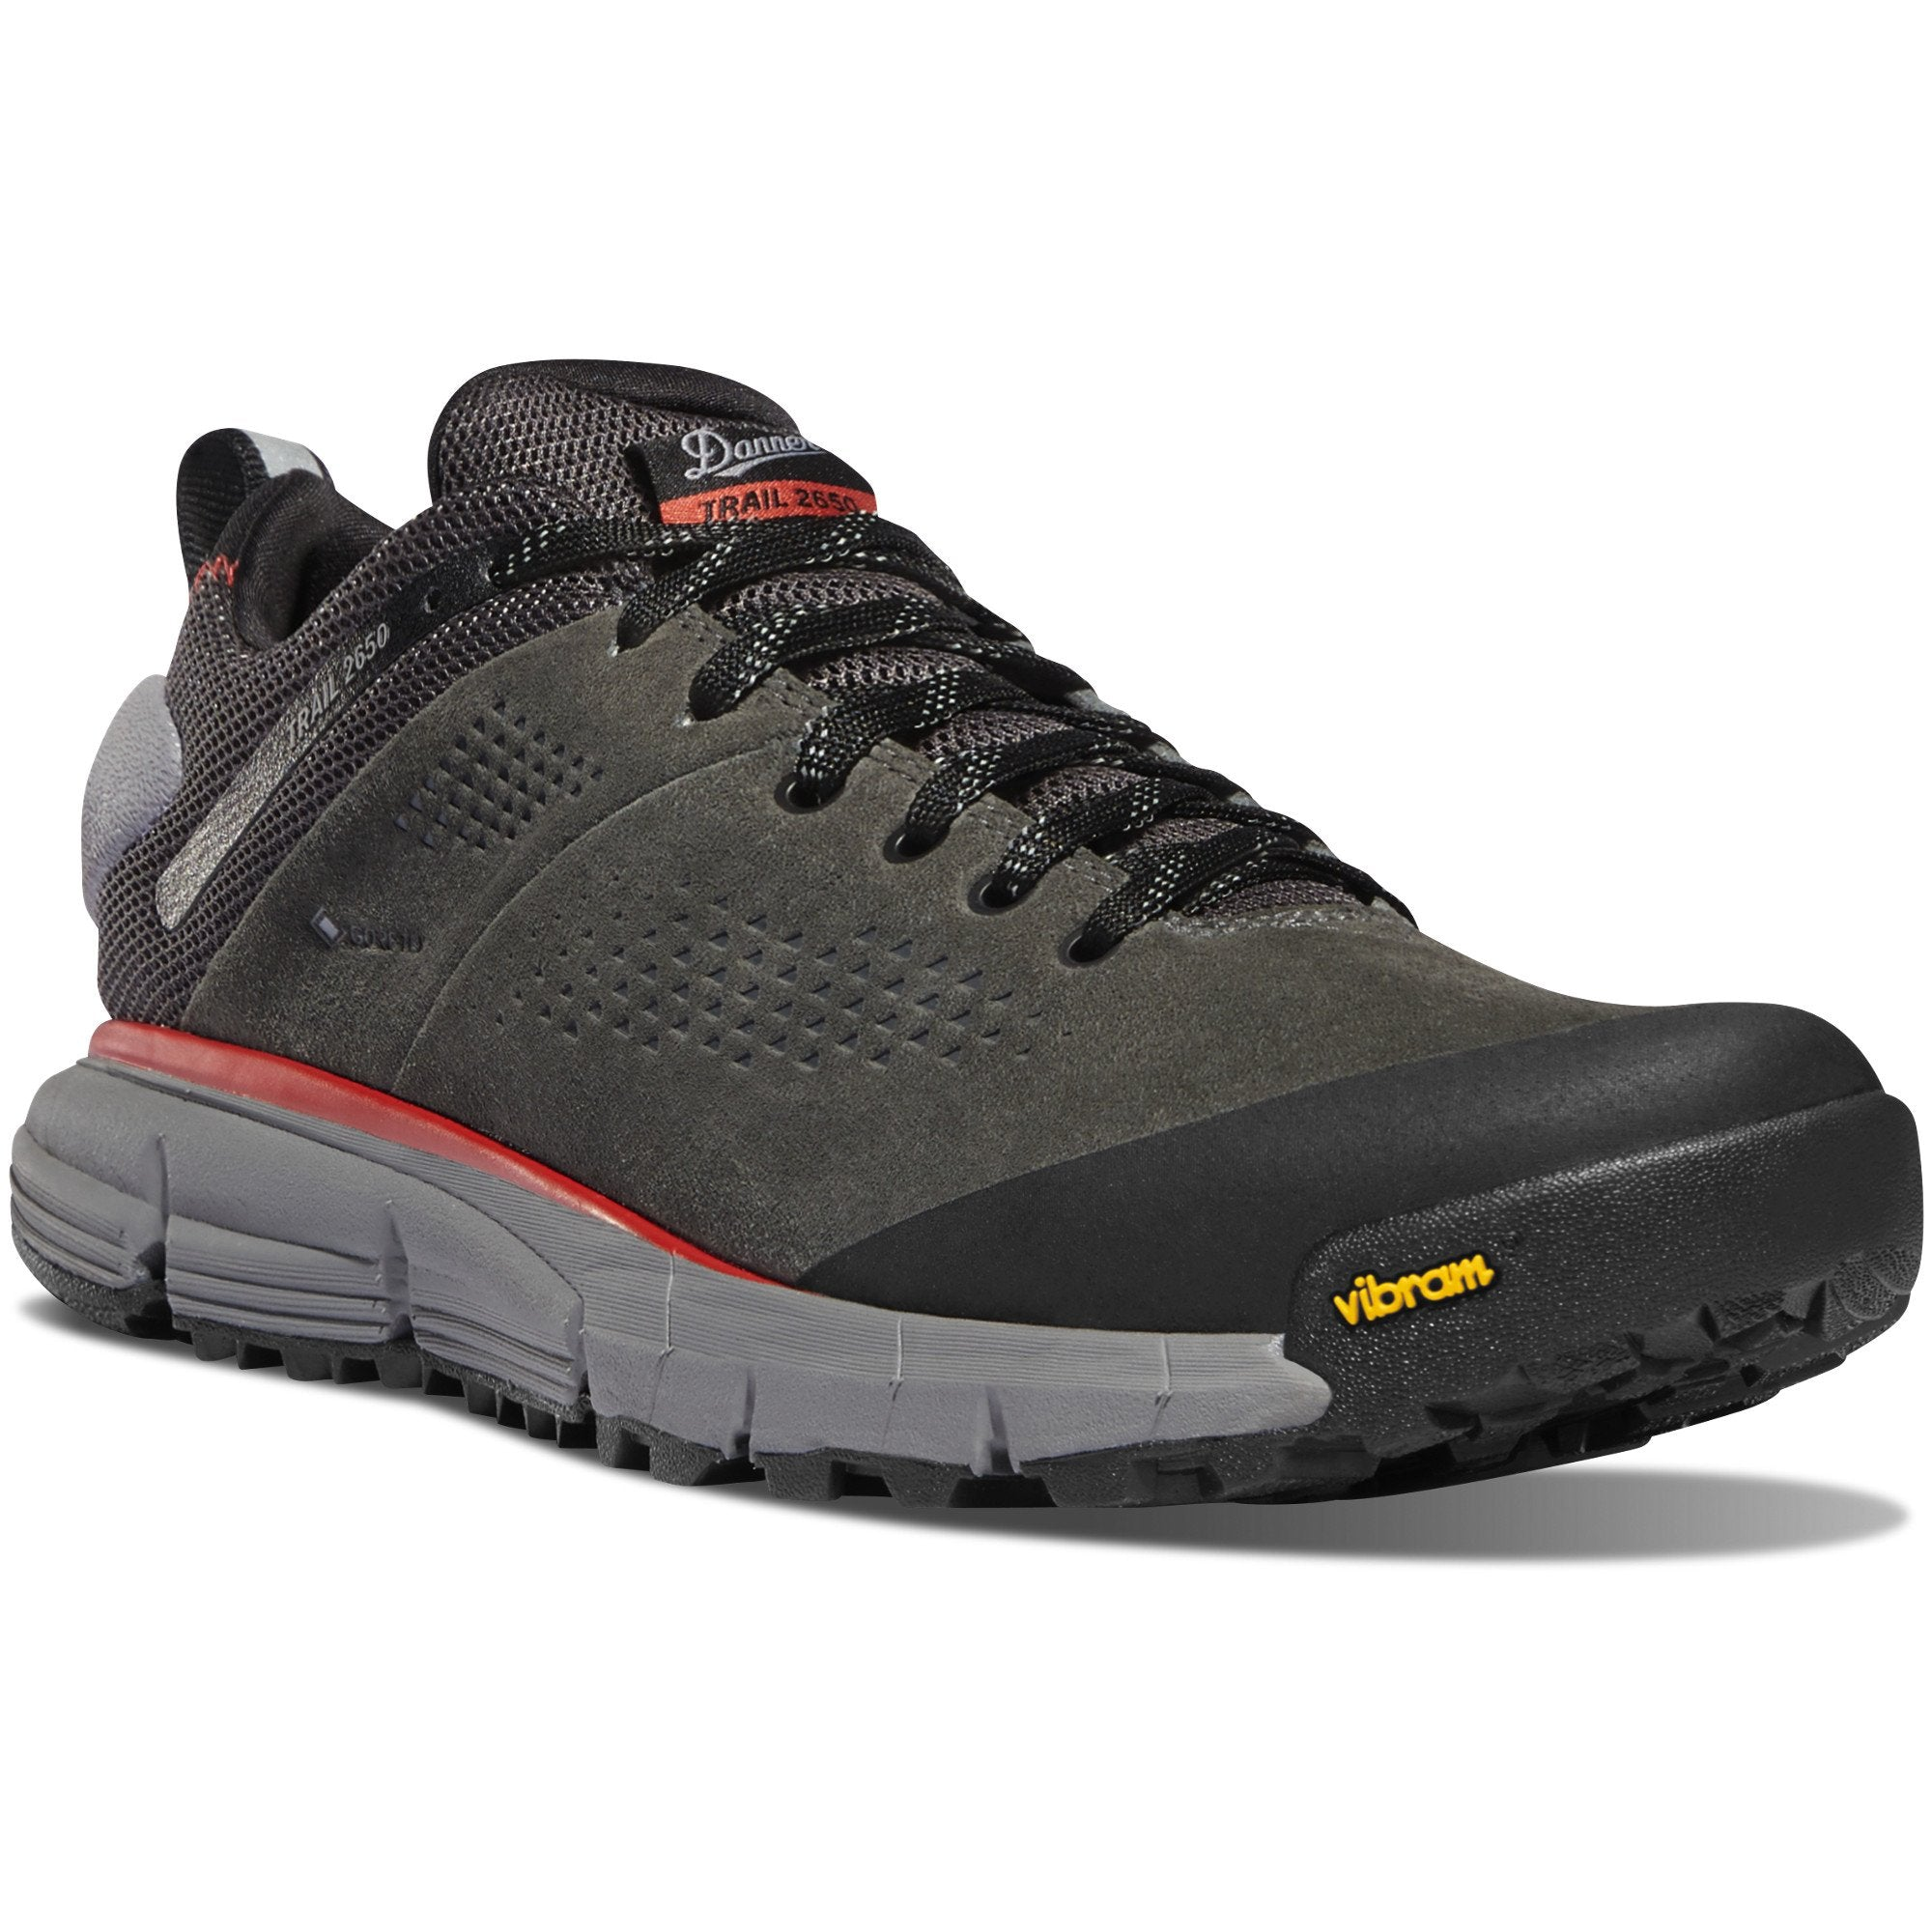 "Trail 2650 3"" Gore-Tex Hiking Shoe in Dark Gray/Brick Red color from the side view"